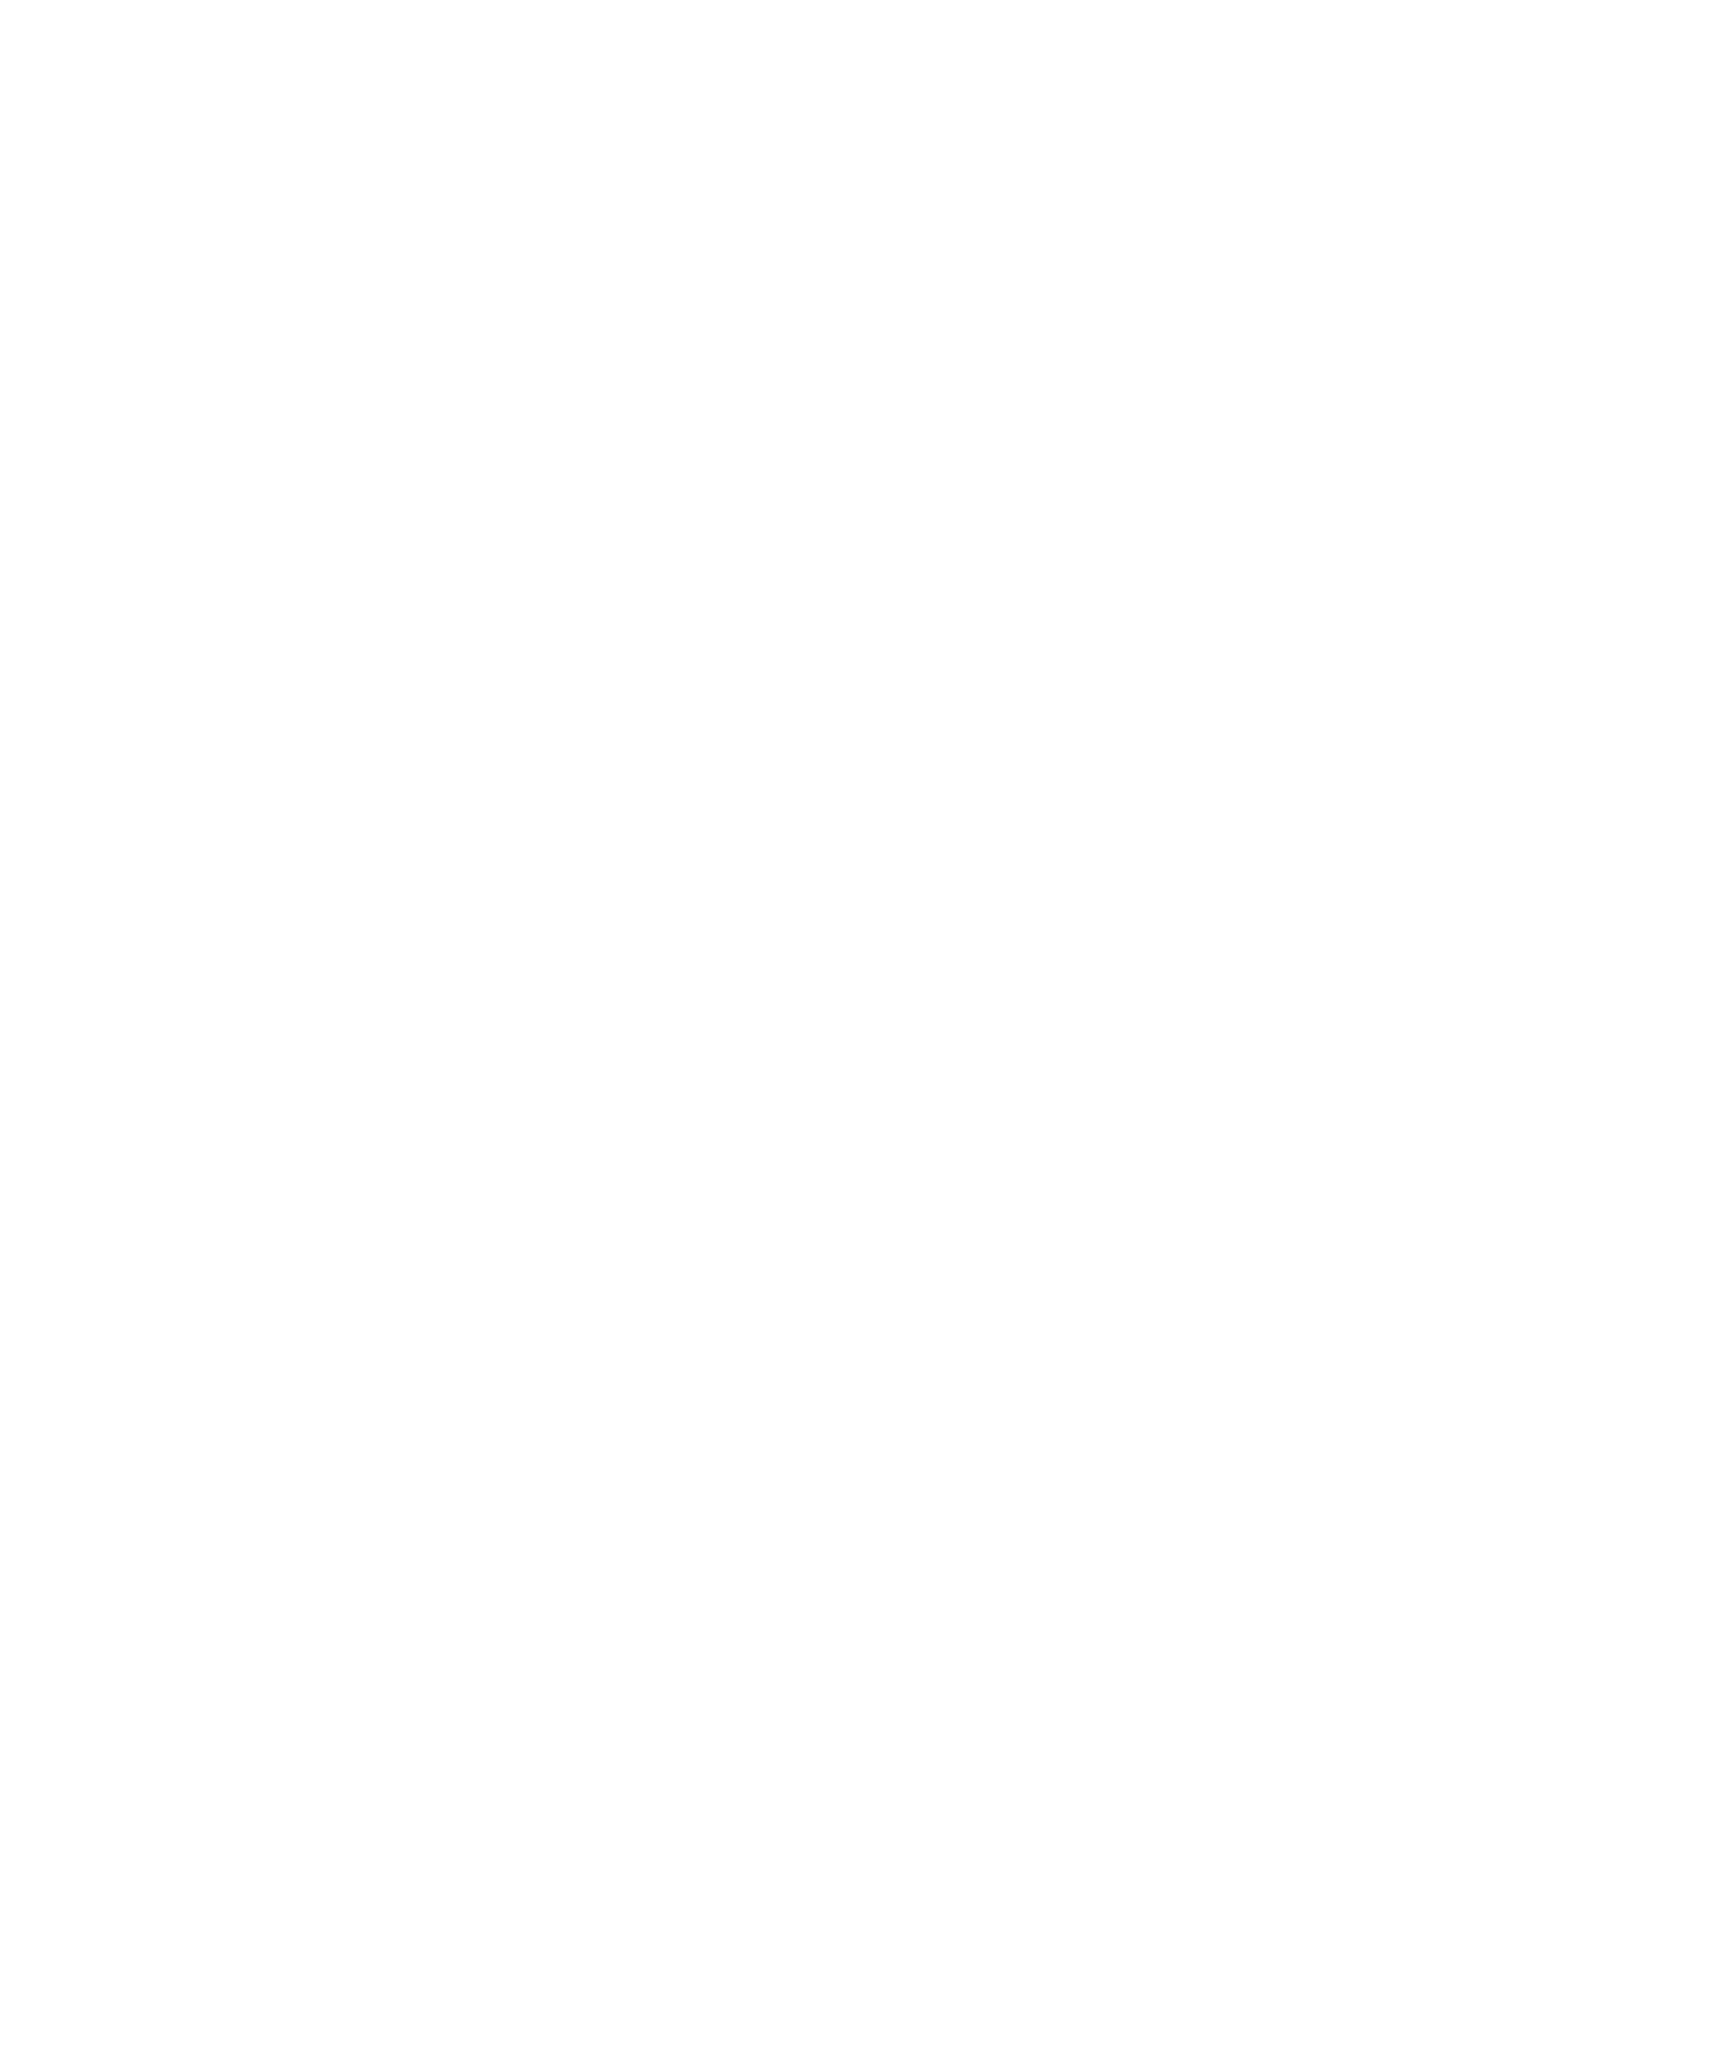 UNDERFOOT - Formally known as the 333 Basement